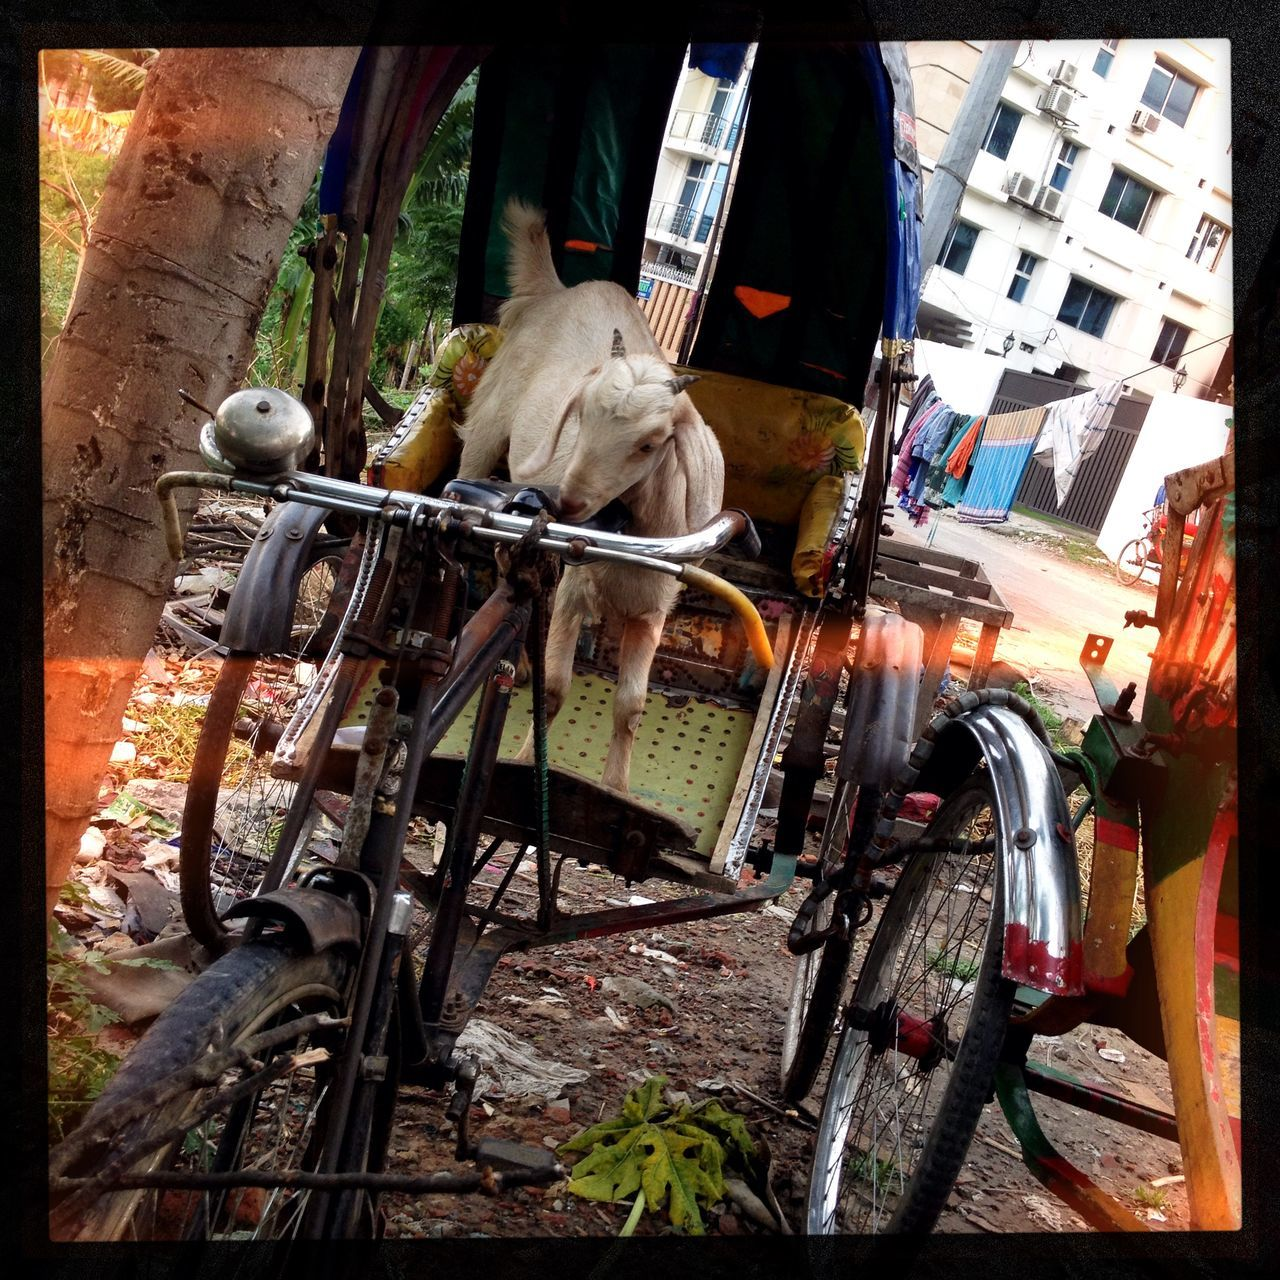 My new Driver , ready for the Rickshaw ride? This Goat is going to take me trough the Street of Dhaka, Bangladesh . I asked how much but I think he was too busy chewing the seat to answer! Animal Out Of Control Public Transportation IPhoneography Hipstamatic Travteller (vince Boisgard)